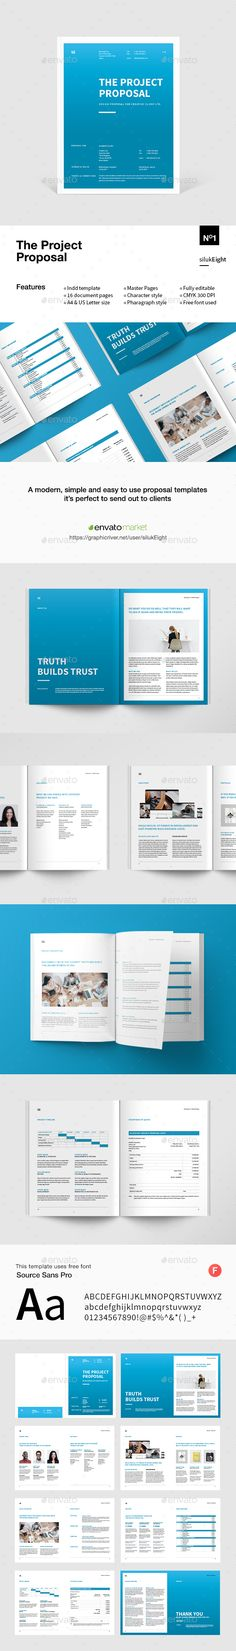 Web Site Advertising Proposal Template InDesign INDD Download here